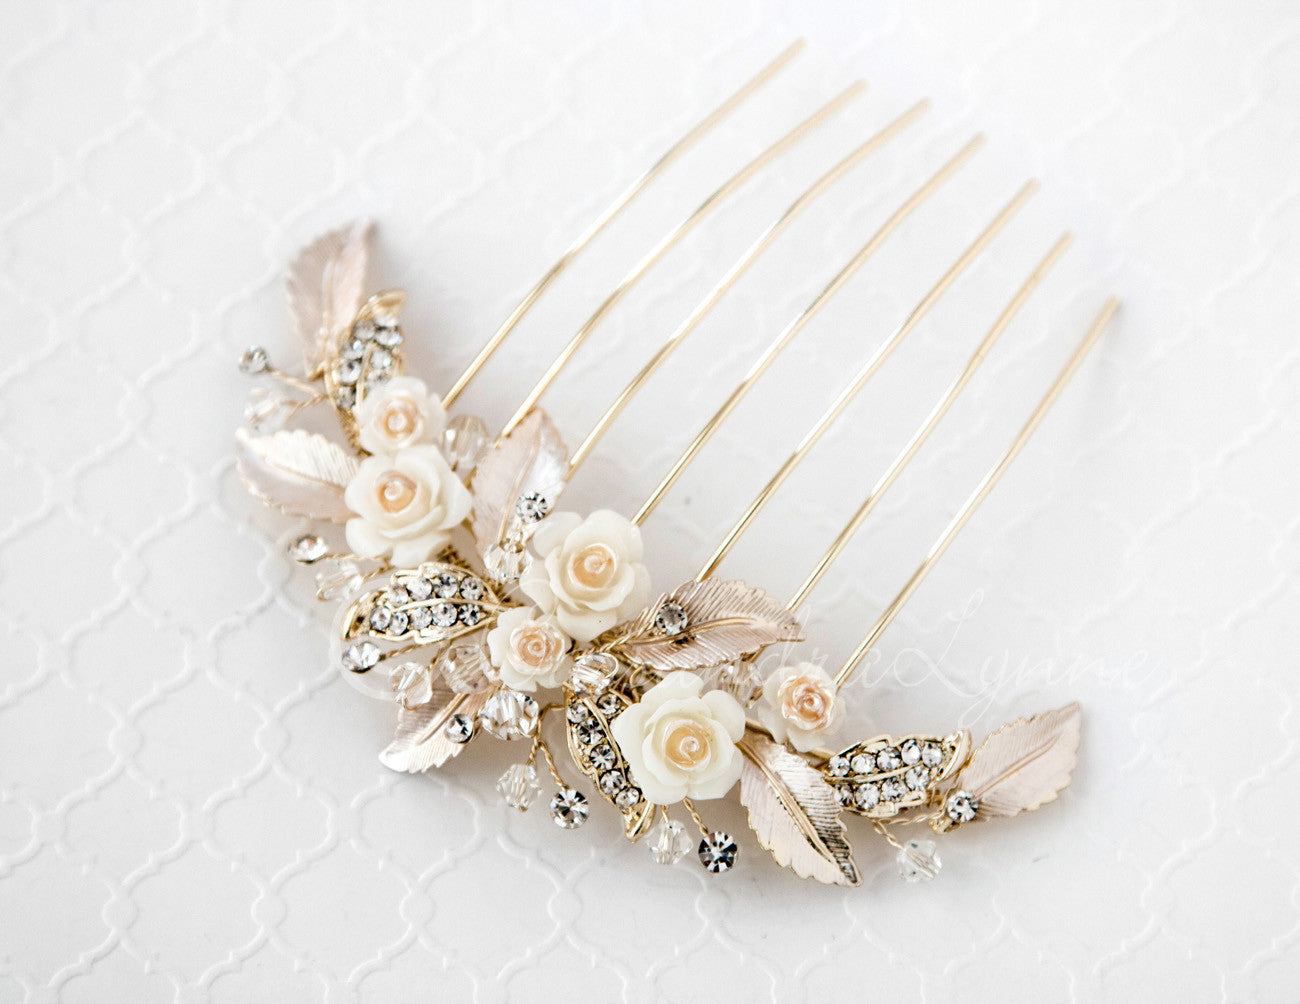 Bridal Veil Comb of Porcelain Flowers and Light Gold Leaves